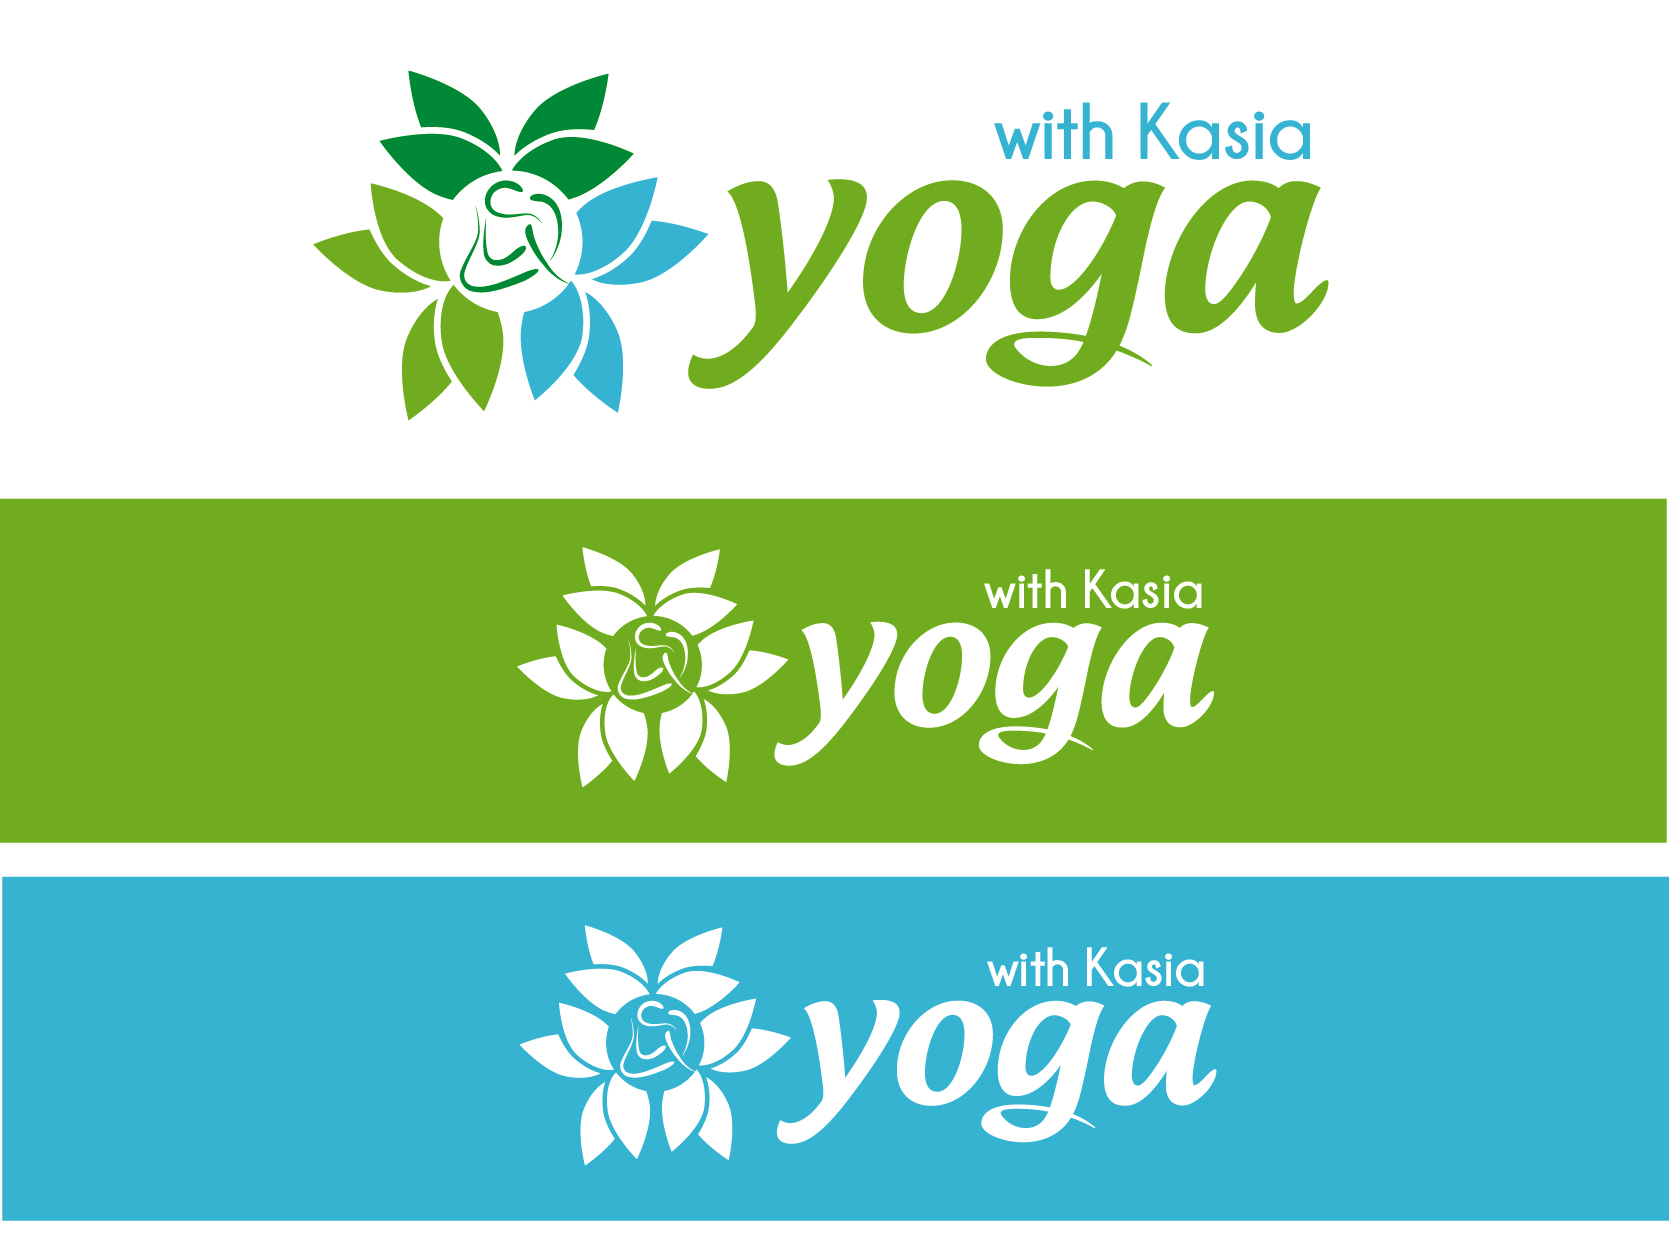 Logo Design by VENTSISLAV KOVACHEV - Entry No. 56 in the Logo Design Contest Artistic Logo Design for Yoga with Kasia.